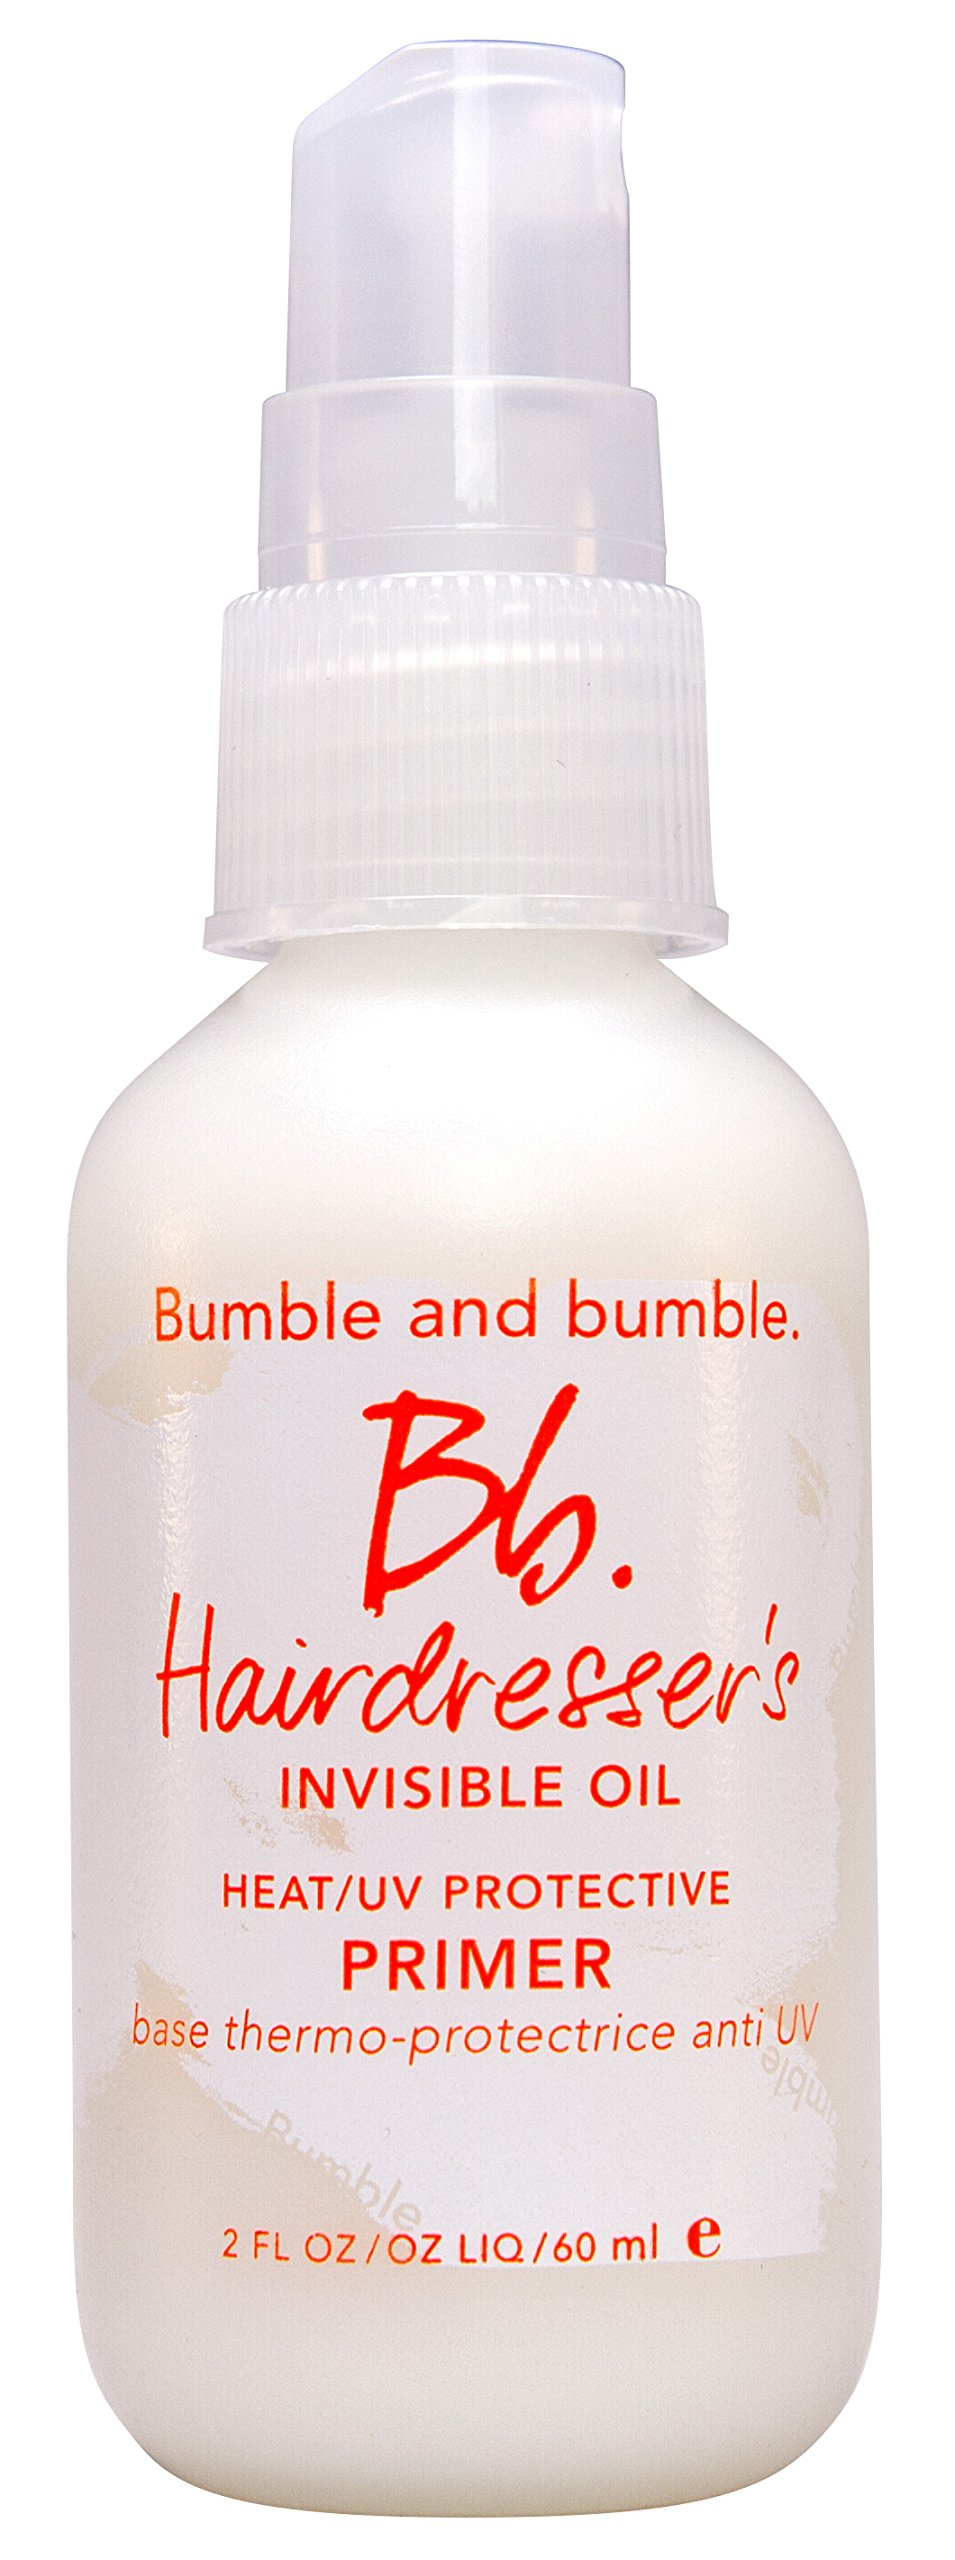 Bumble and Bumble Hairdresser's Invisible Oil Primer Travel Size 2. oz